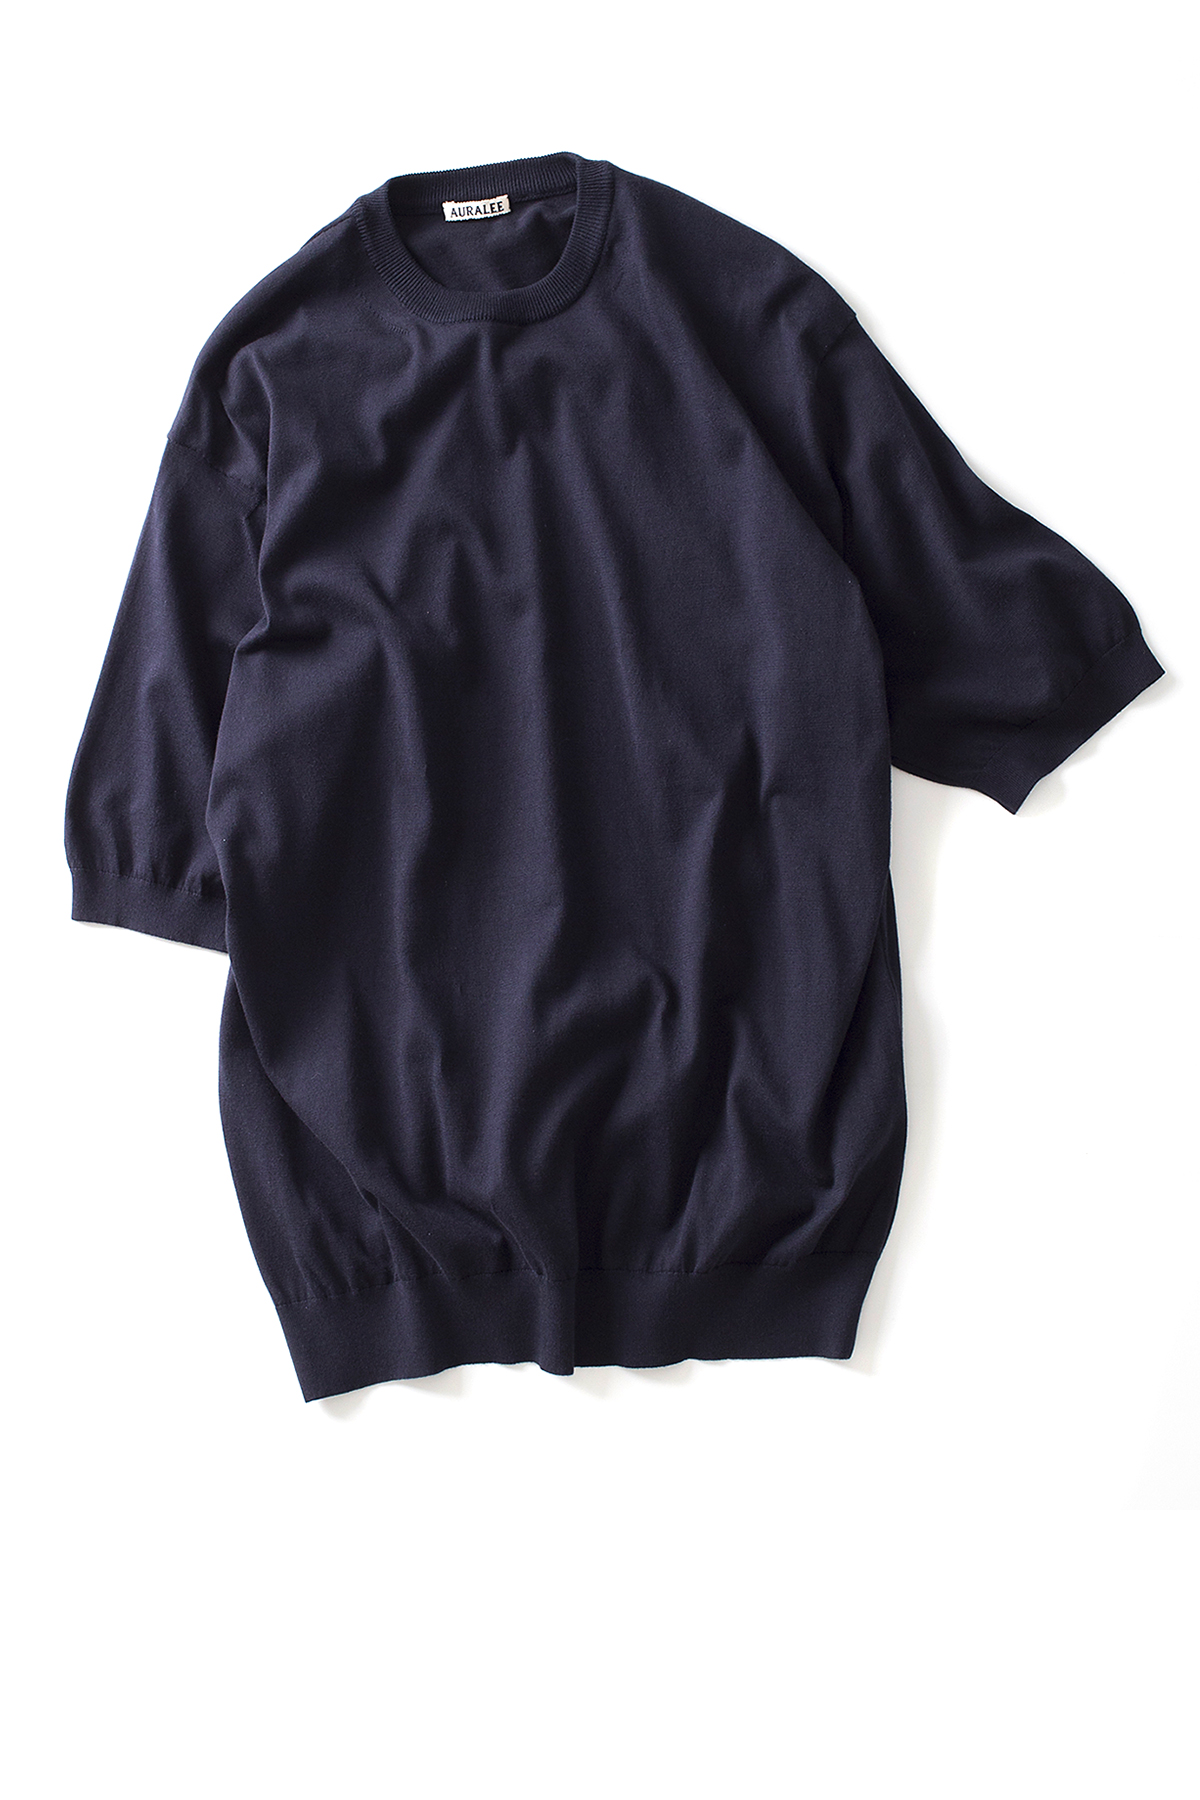 Auralee : Superfine High Gauge Big Knit Tee (Navy)